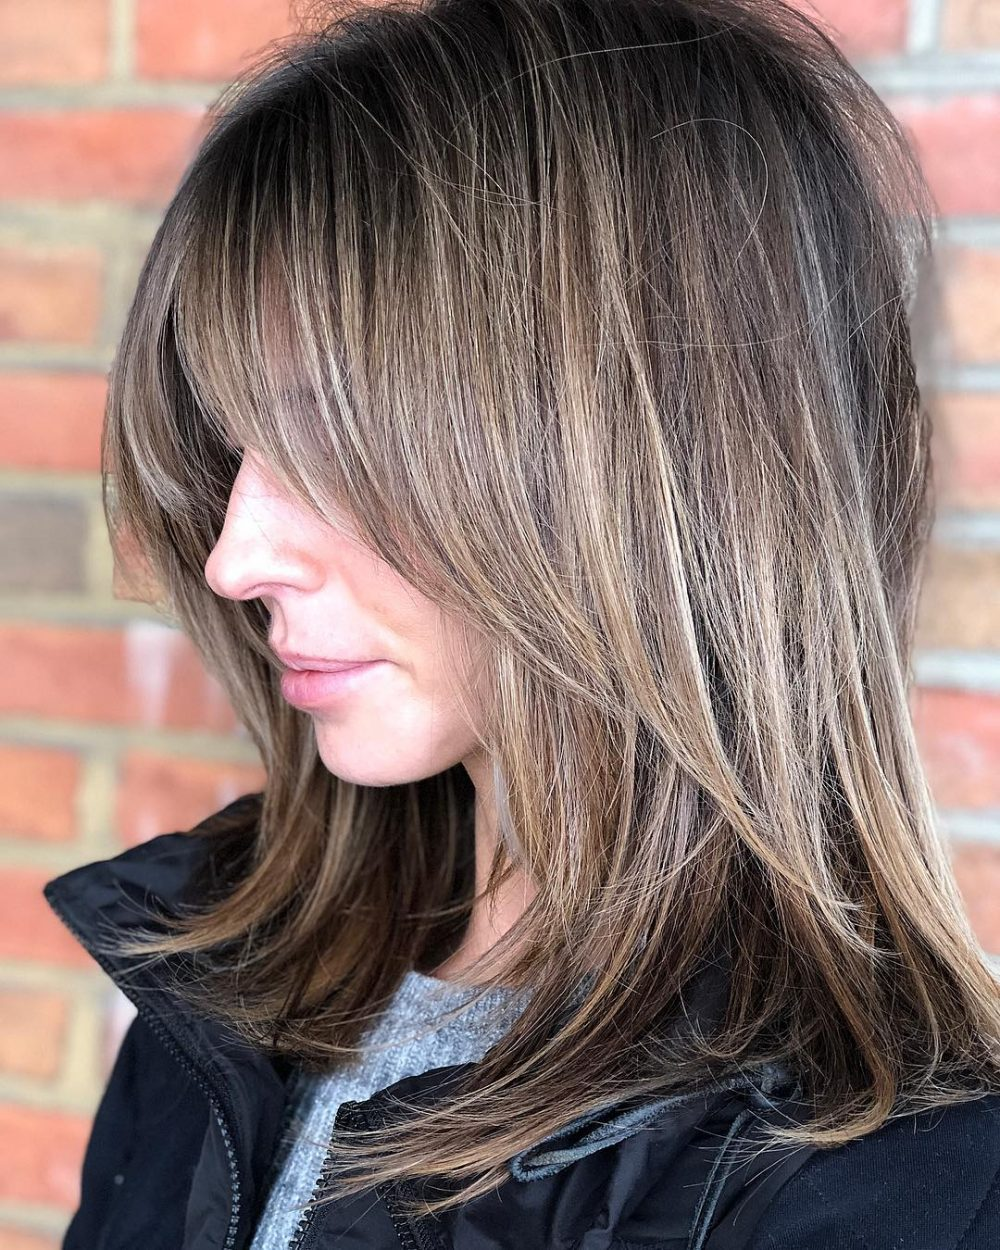 A trendy bronde colored shag with bangs